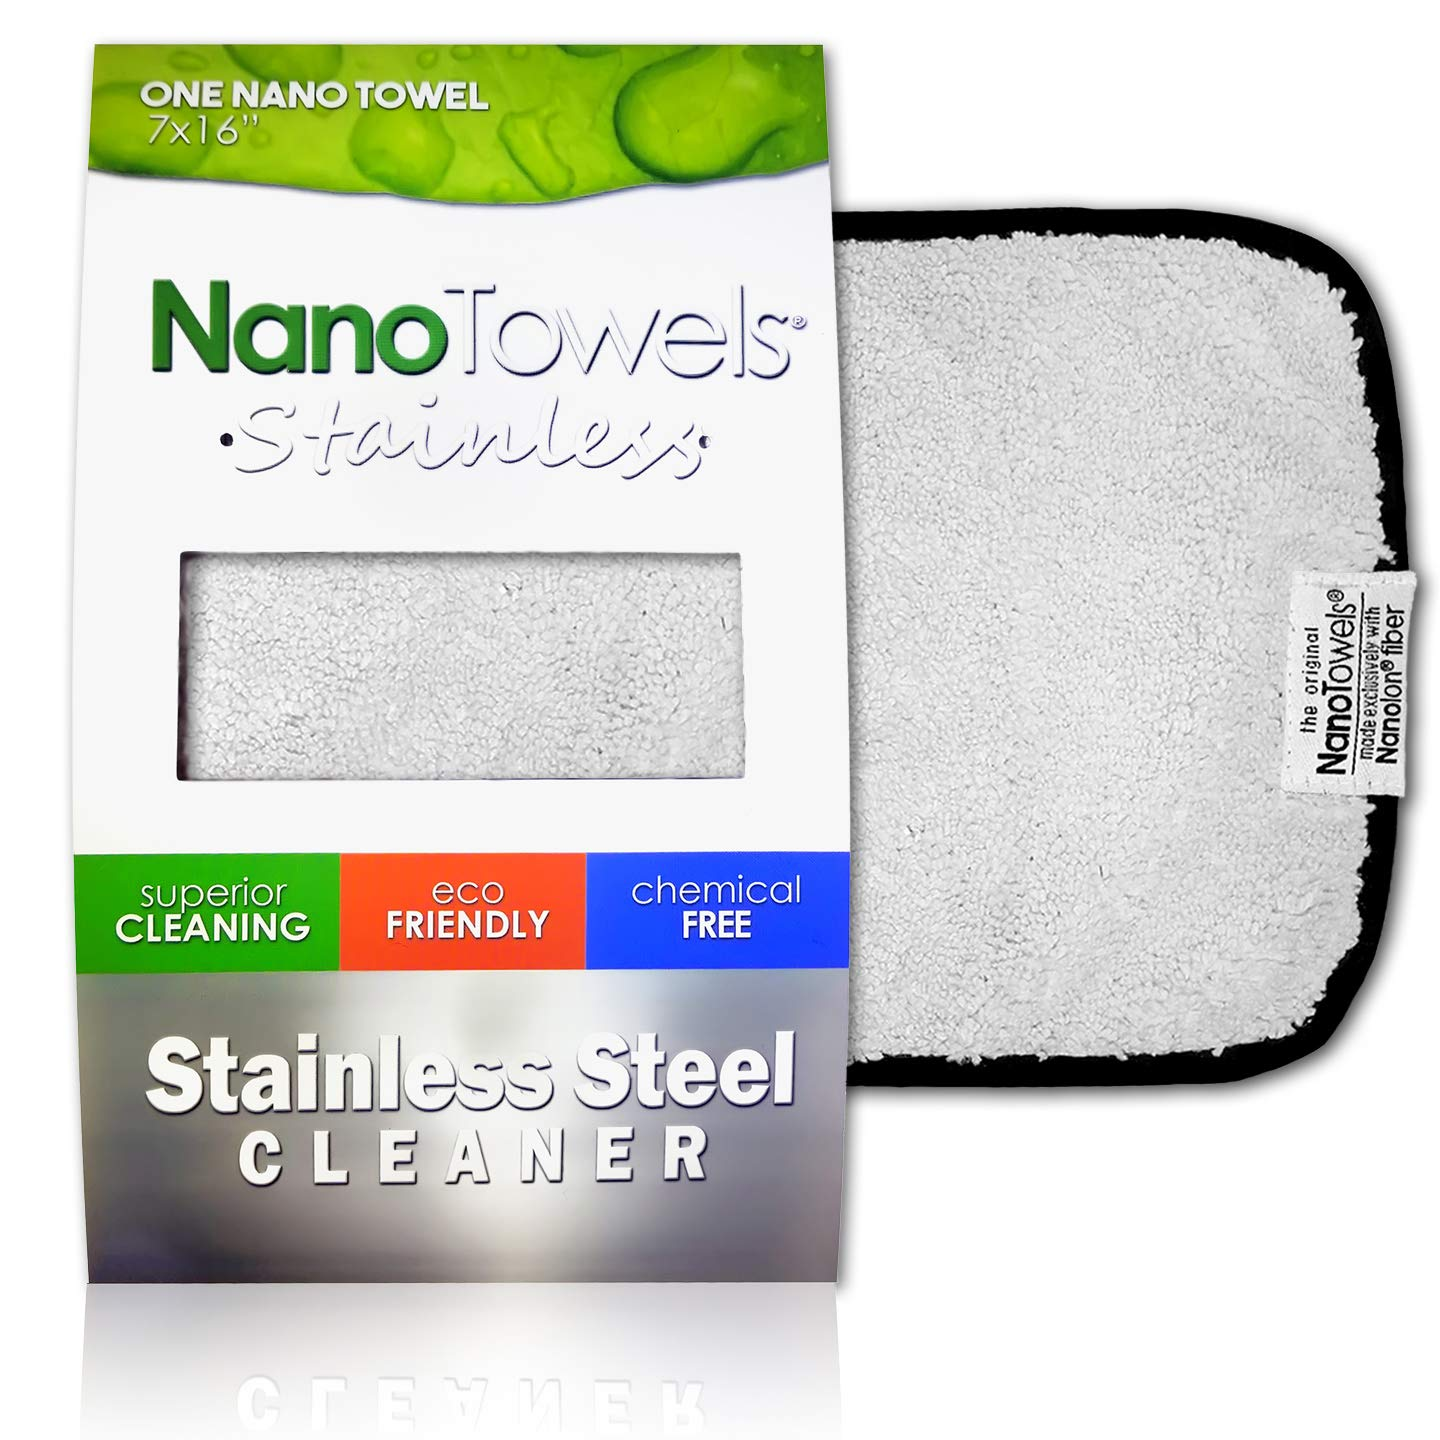 Nano Towels Stainless Steel Cleaner   The Amazing Chemical Free Stainless Steel Cleaning Reusable Wipe Cloth   Kid & Pet Safe   7x16'' 1 Ct.